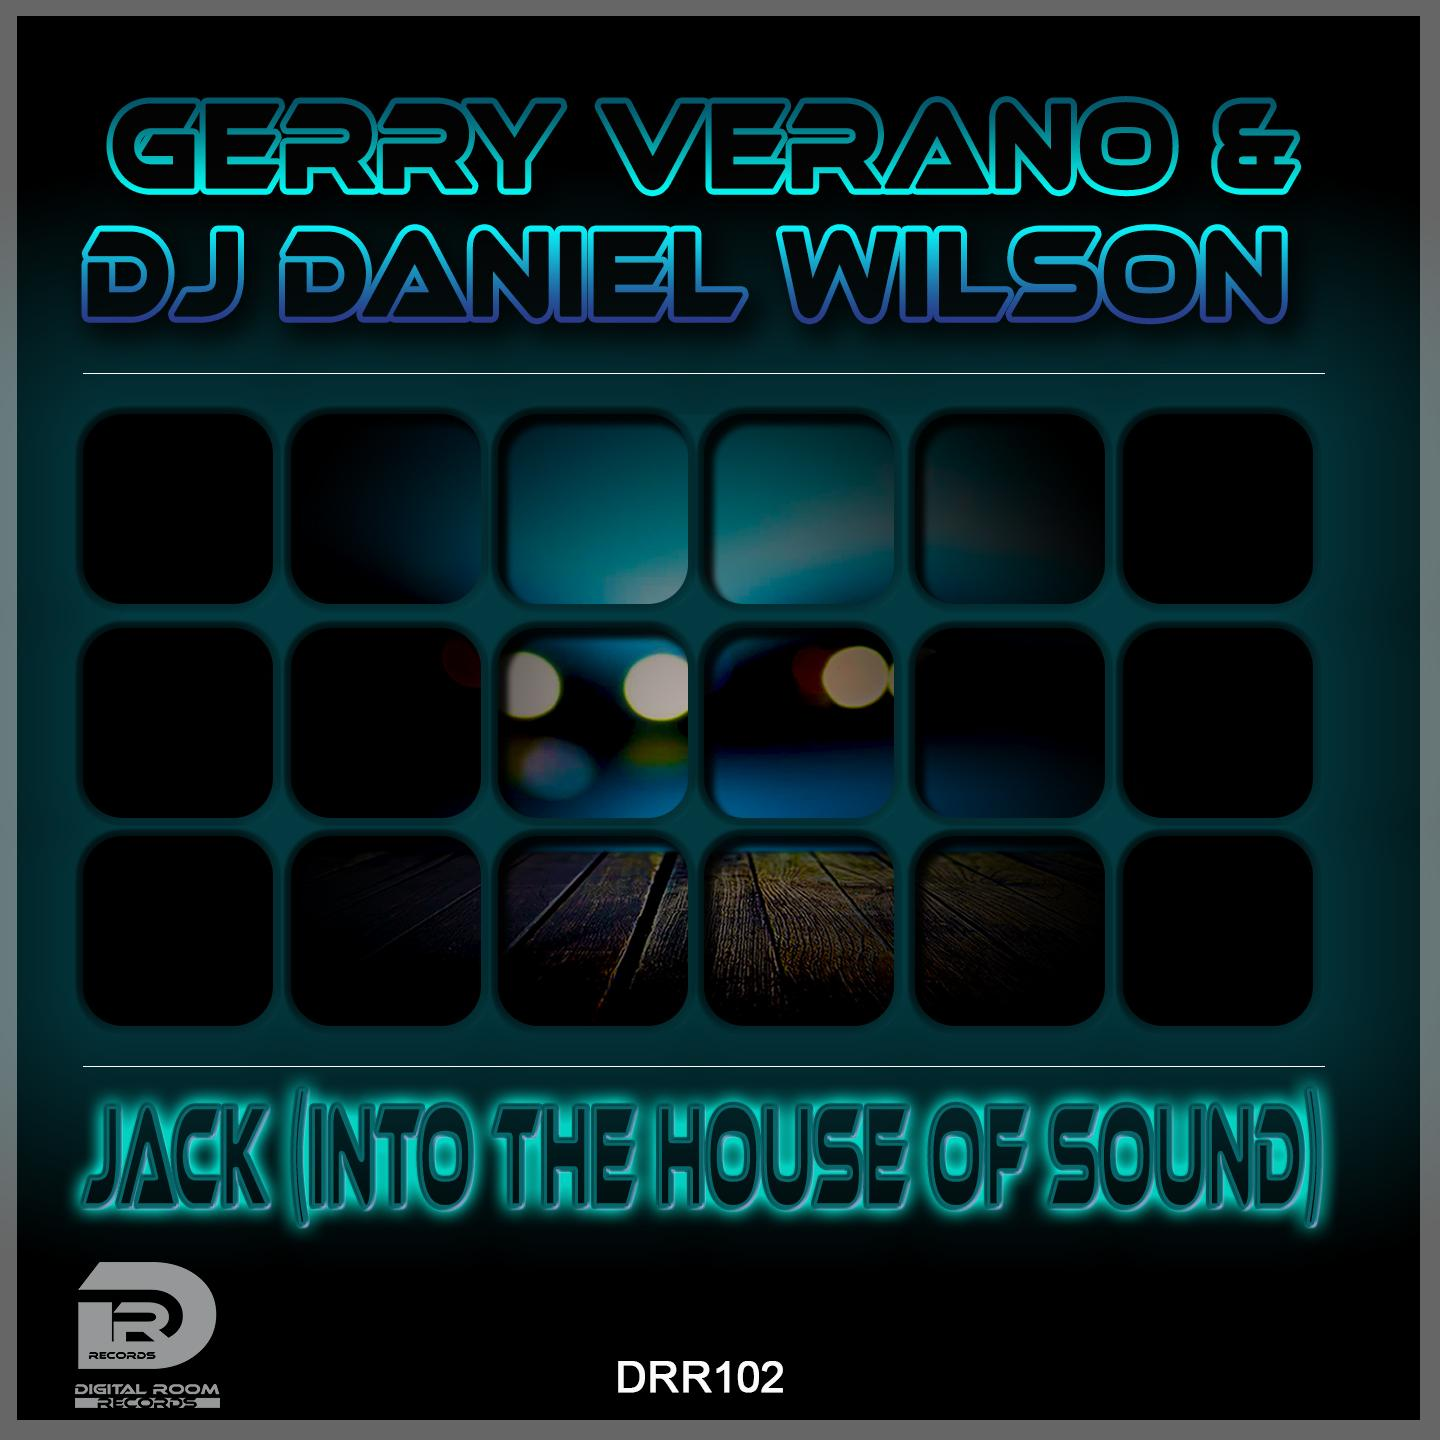 Jack (Into the House of Sound)(Radio Edit)